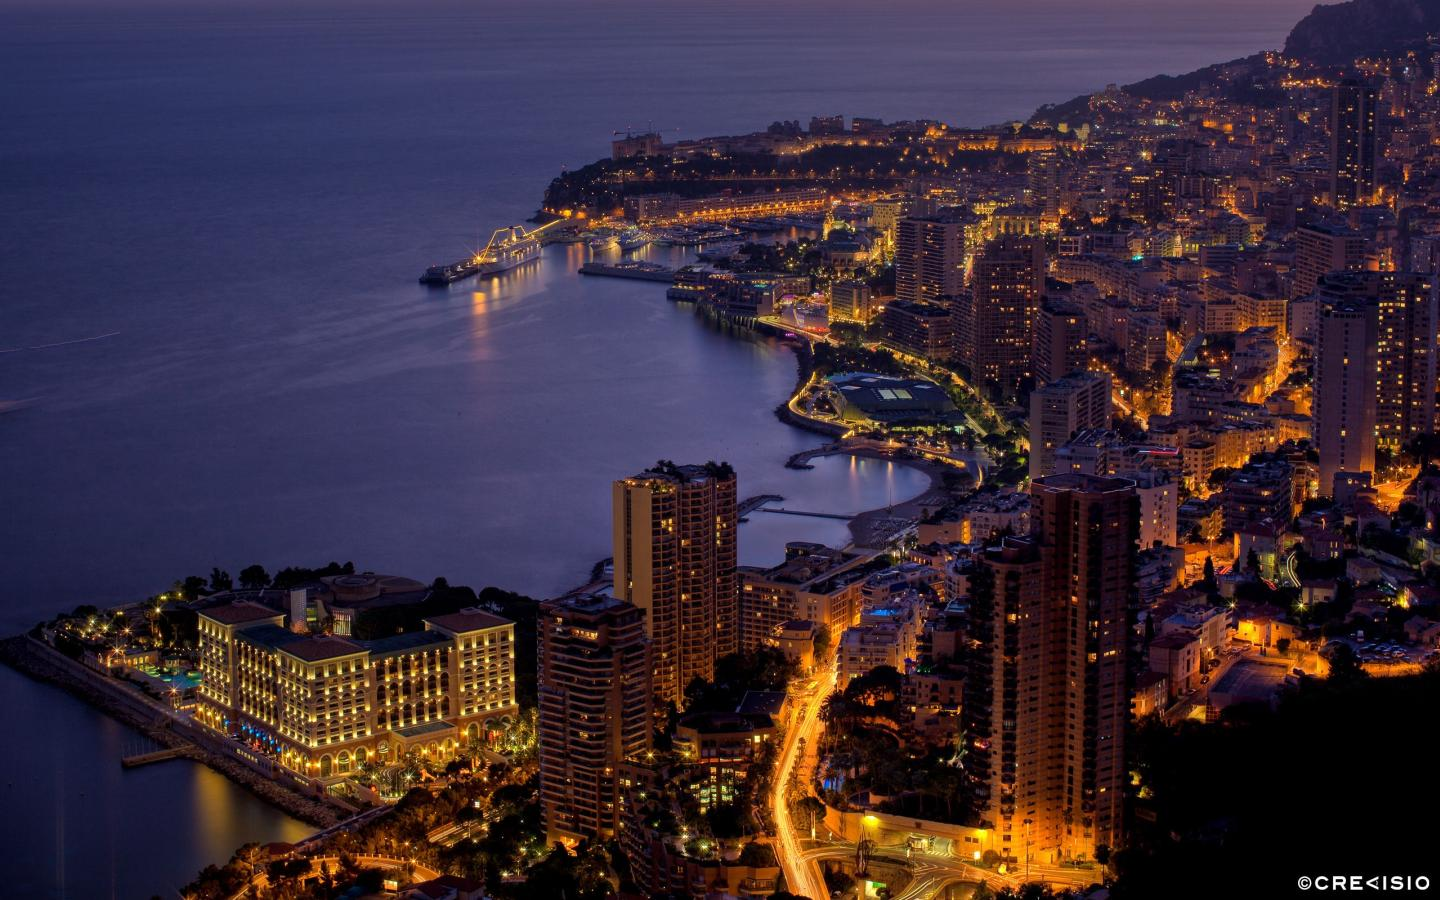 Evening Lights Monaco by Crevisio